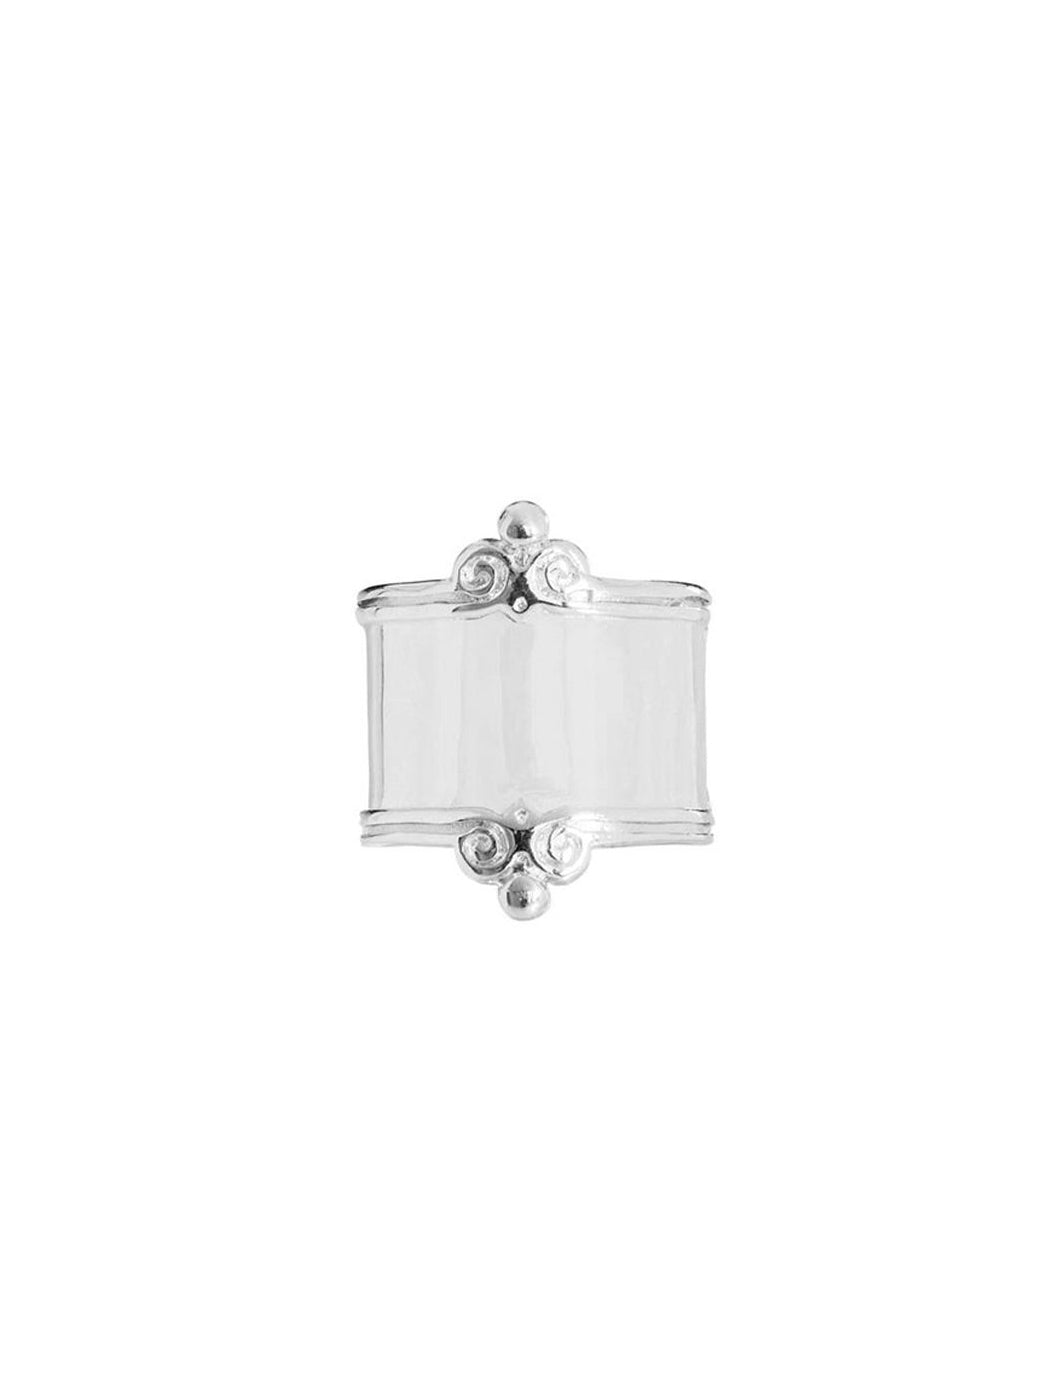 Fiorina Jewellery Scroll Ring Plain